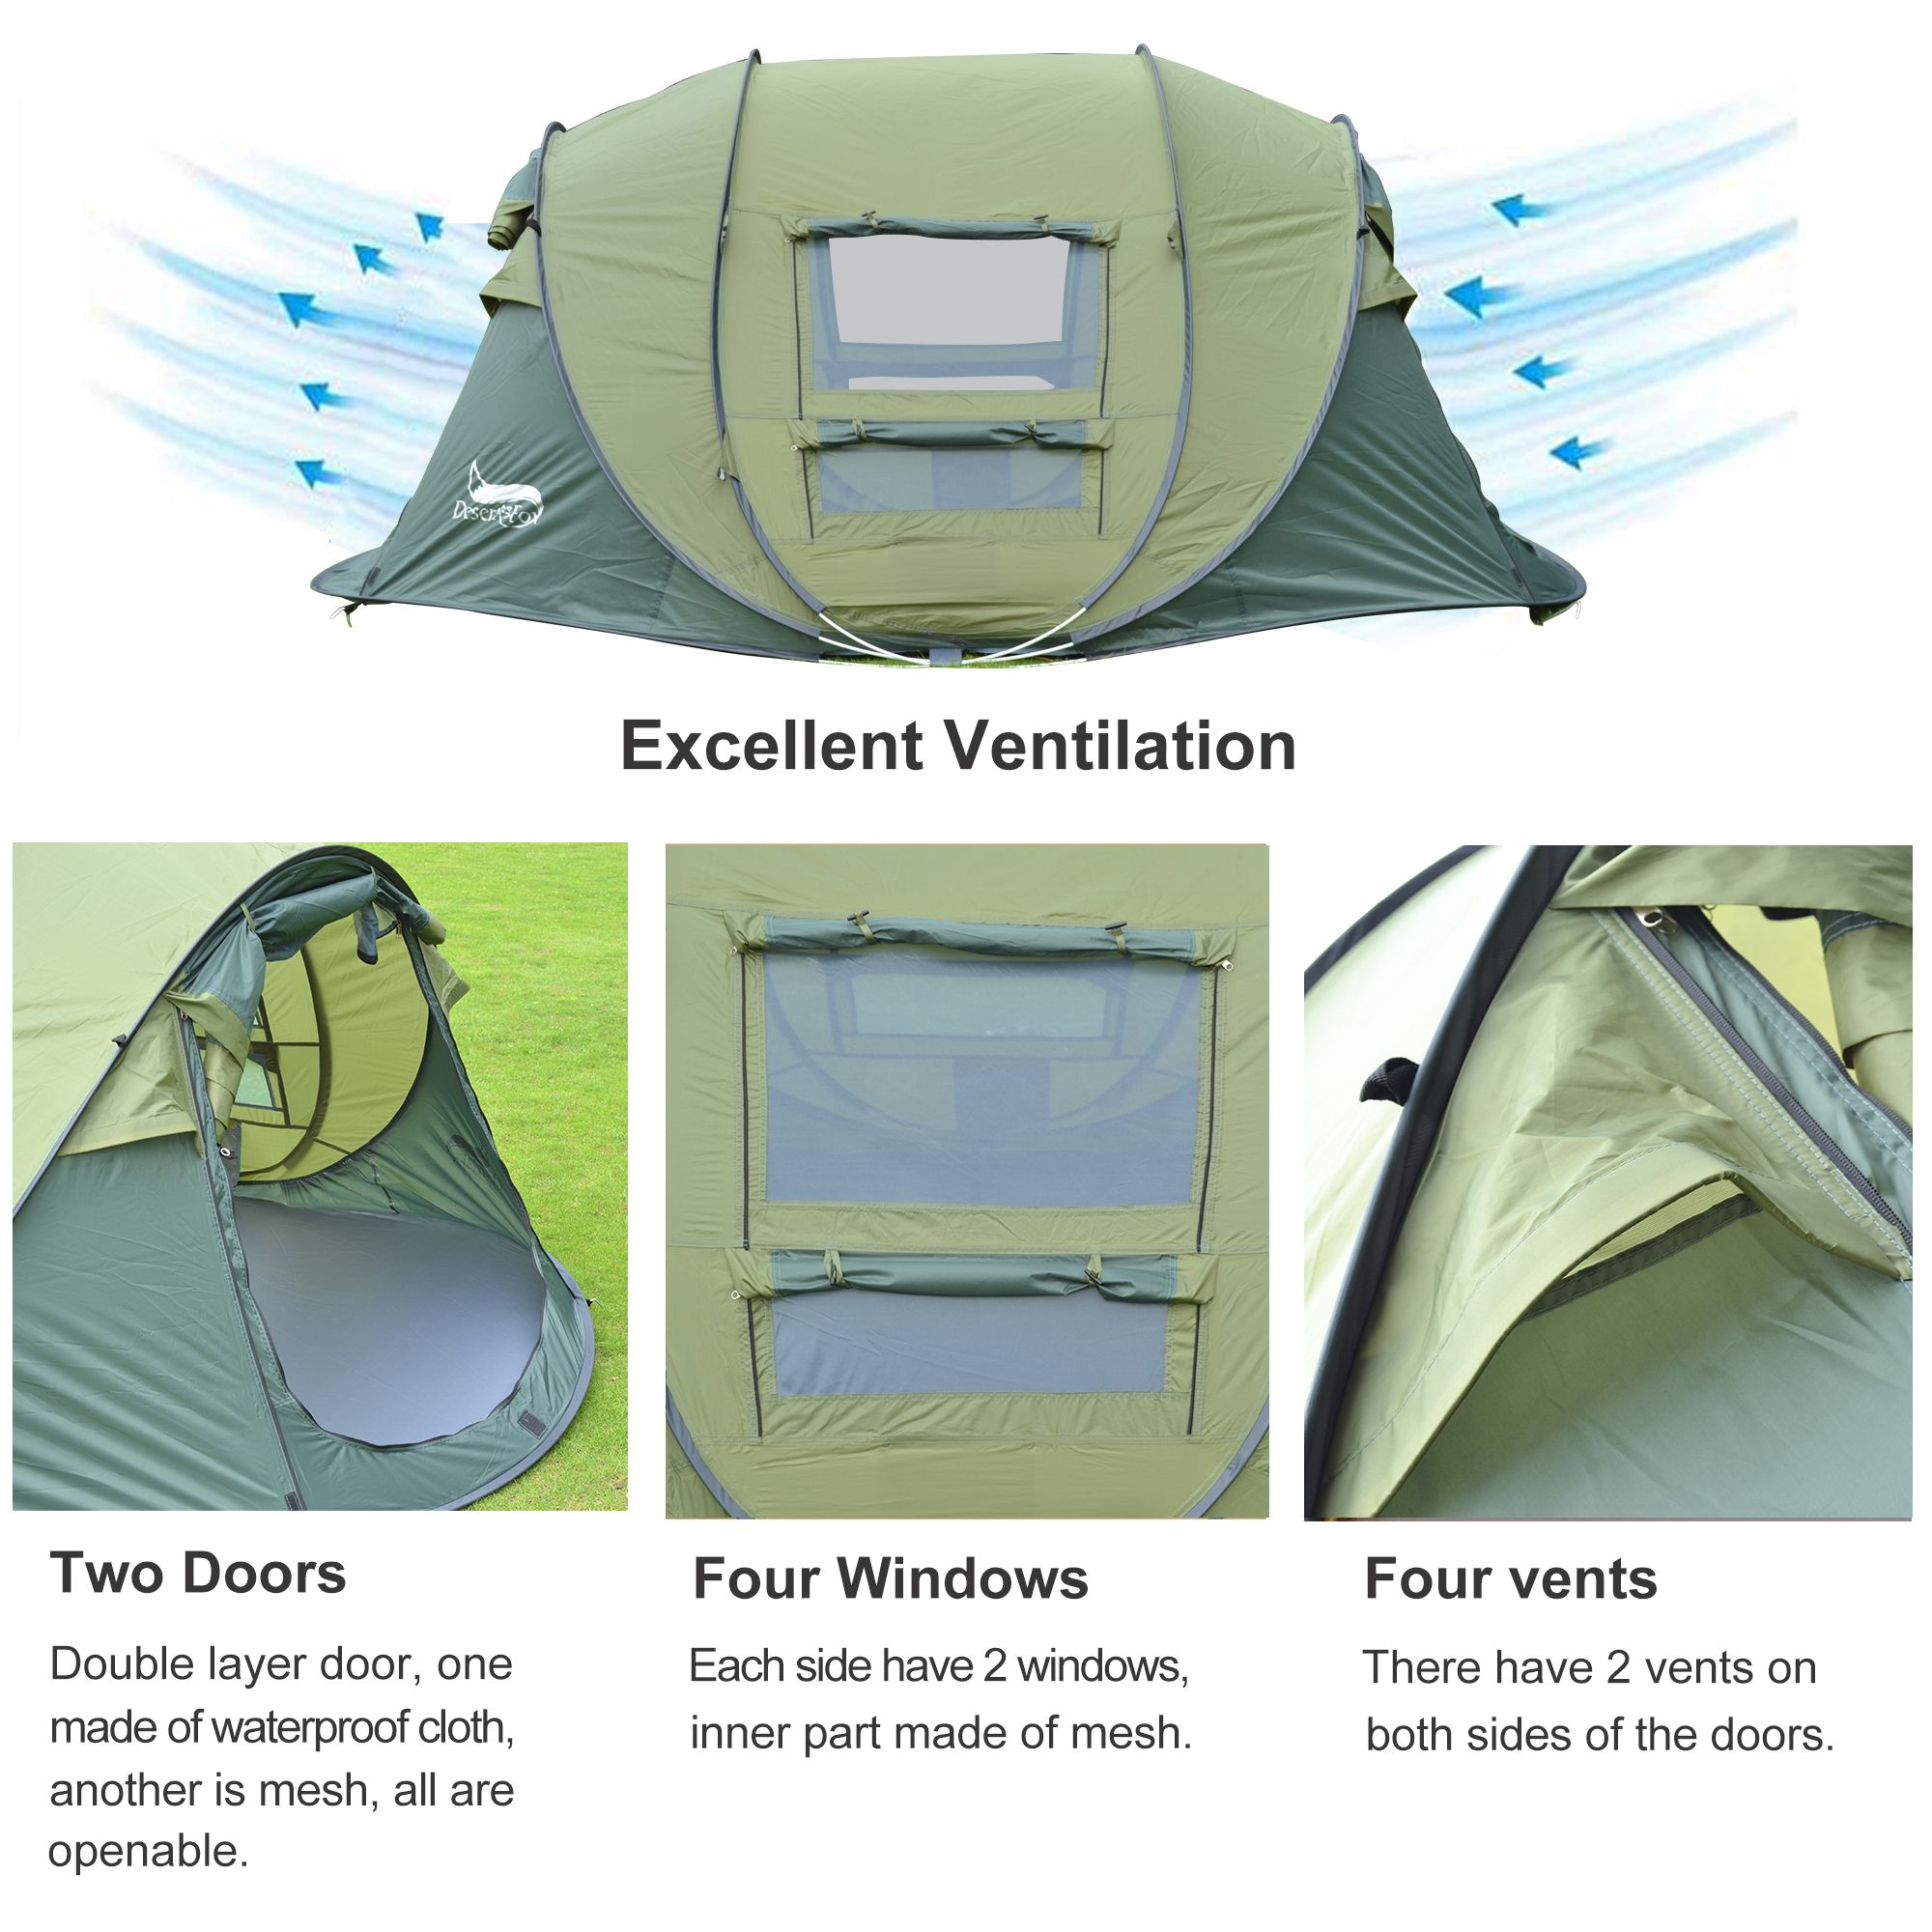 Desert&Fox Outdoor Camping Tents 3-4 Person Automatic Pop Up Instant Tent Hiking Travelling Tourist Fishing Beach Tents Awnings 2